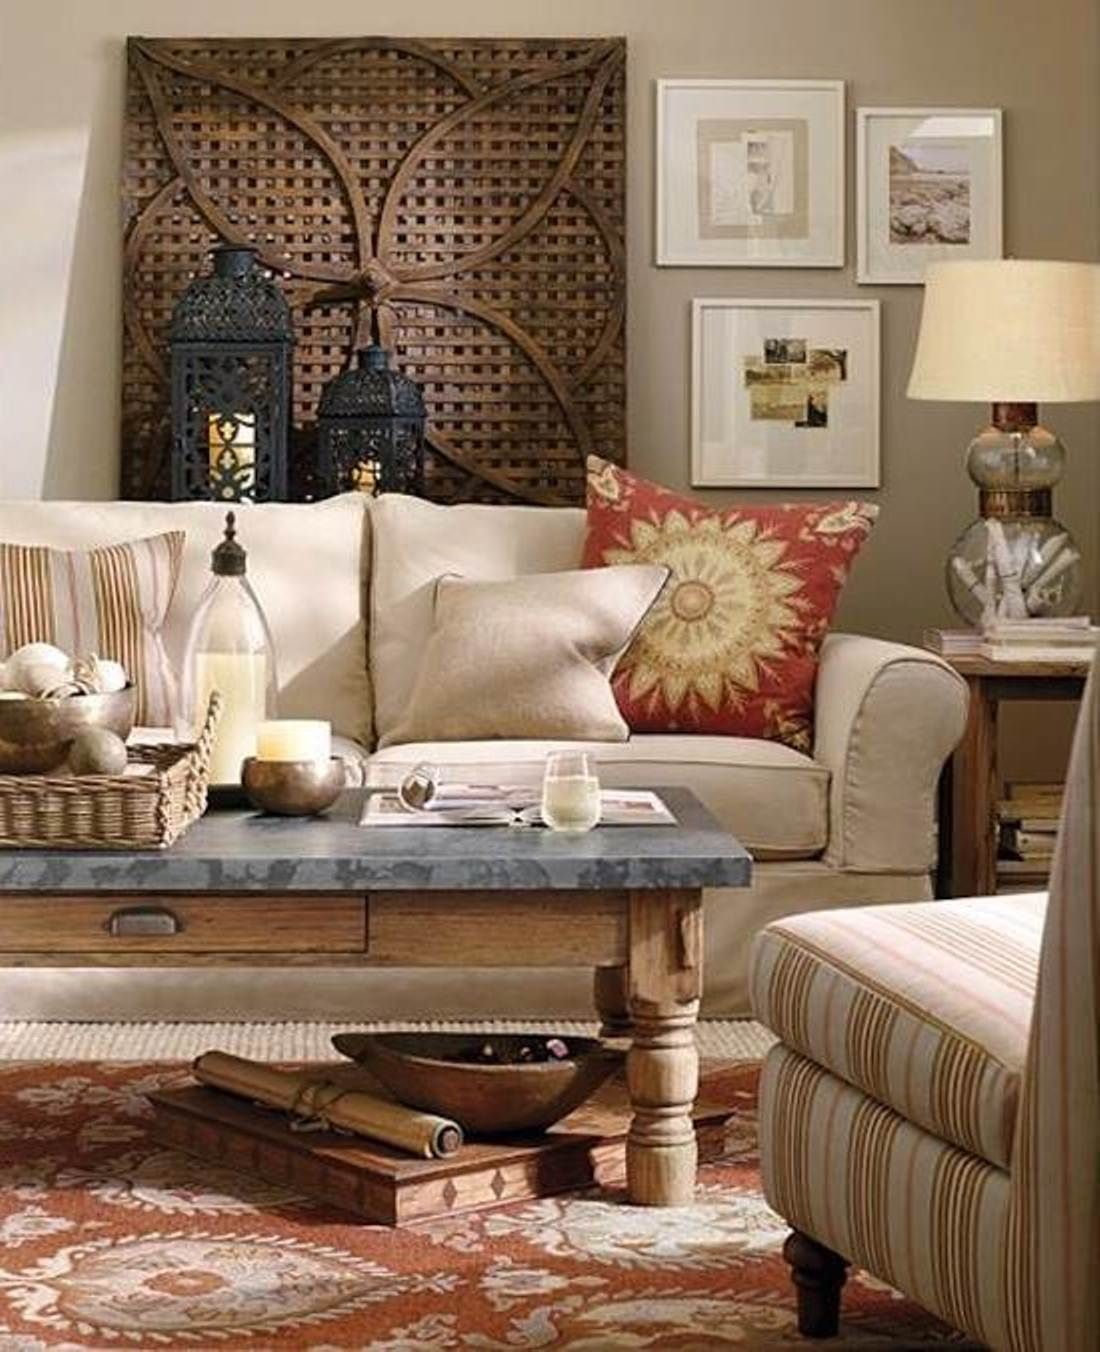 decorating ideas for living rooms | go for cohesive design with